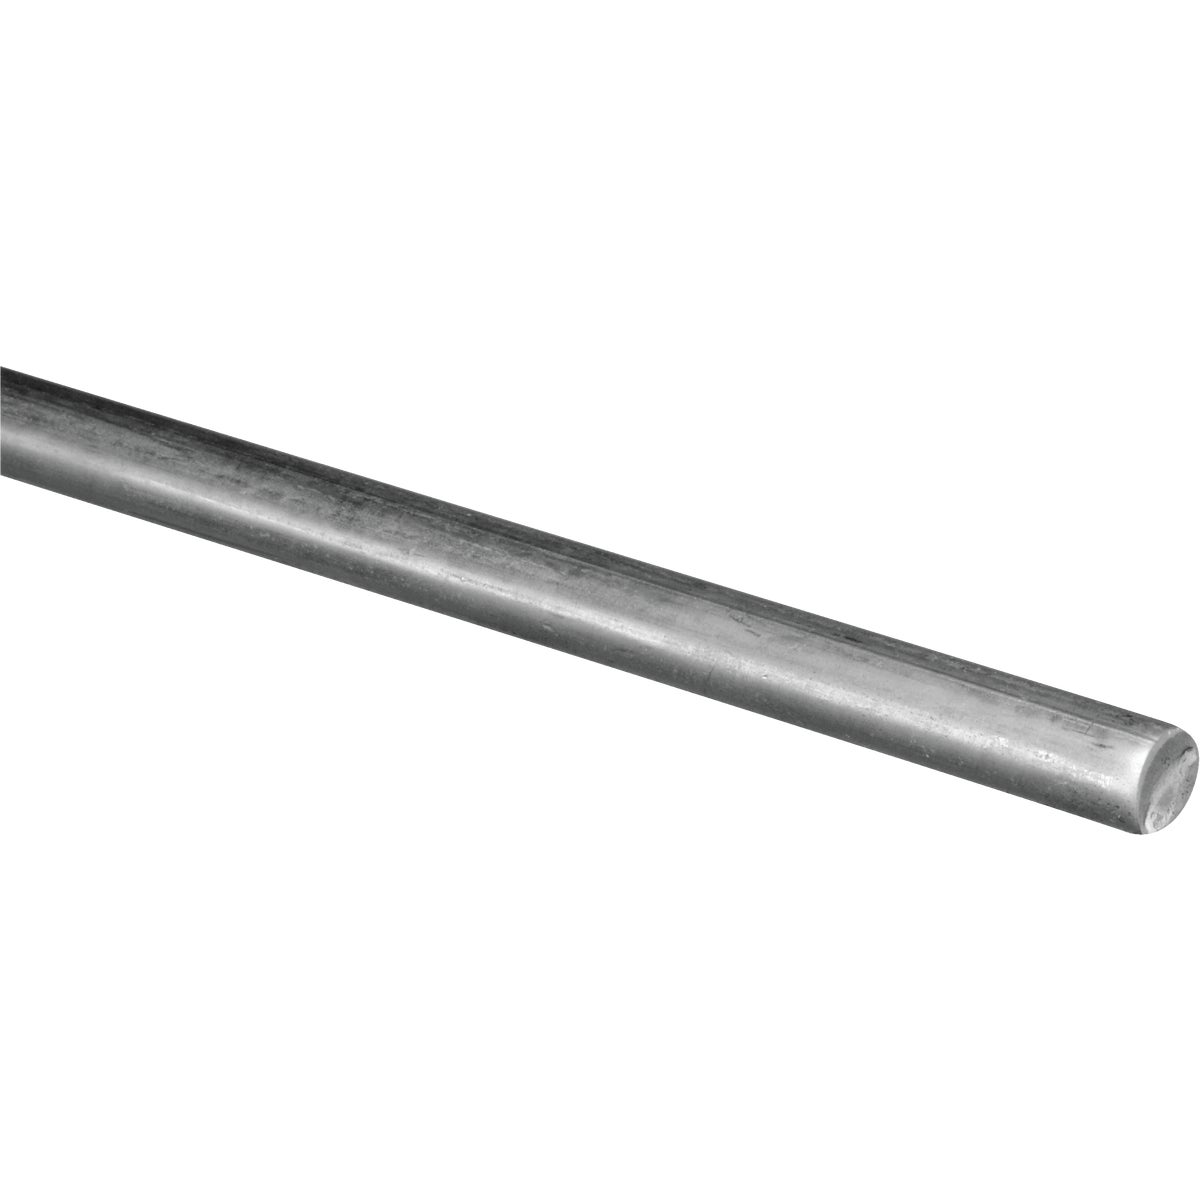 5/16X3' ROUND STEEL ROD - N179770 by National Mfg Co